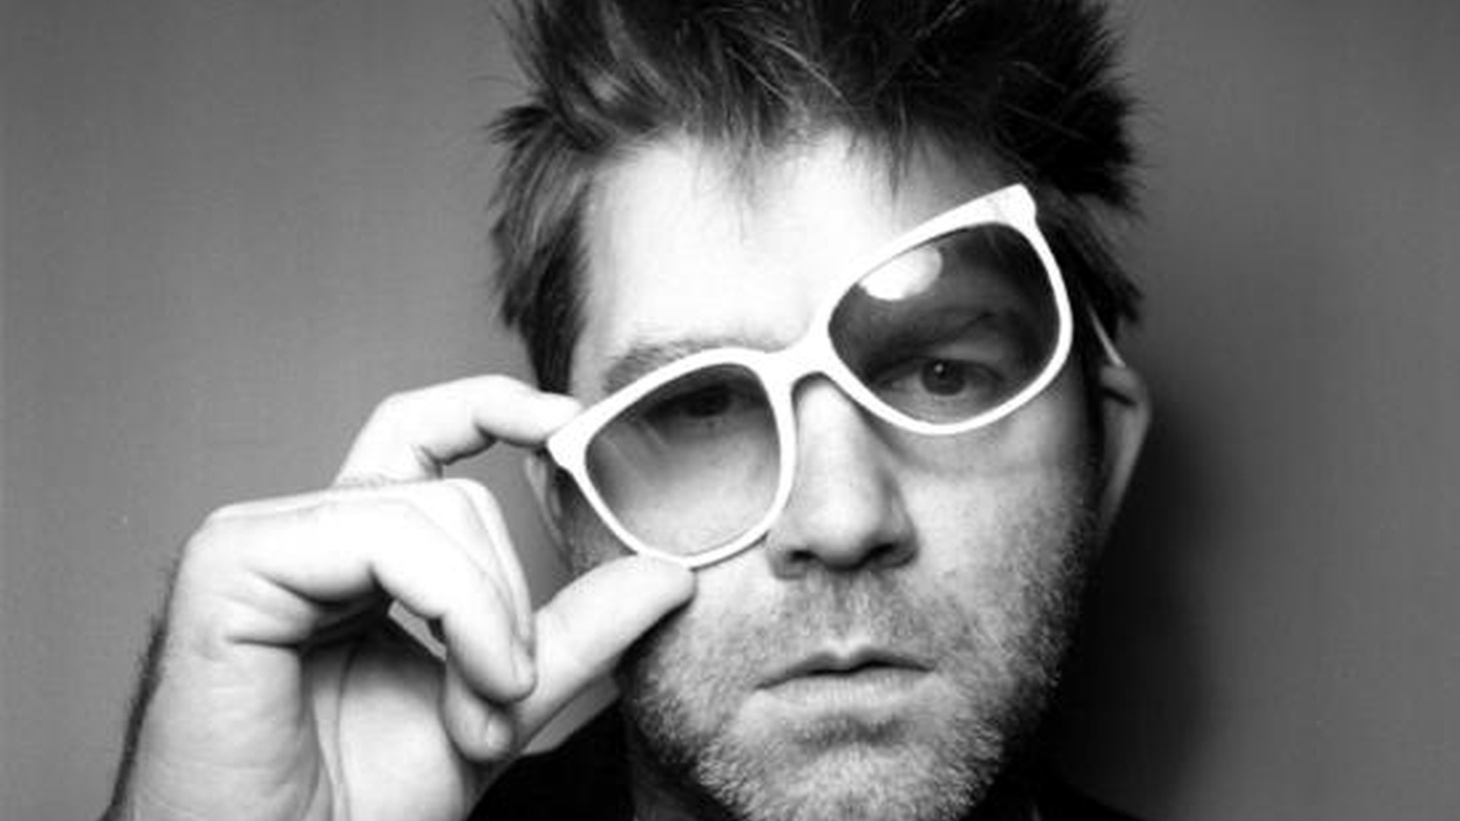 """James Murphy is better known as LCD Soundsystem and his third release, This Is Happening, which he says will be his last under that moniker, includes a new wave torch song we're offering as Today's Top Tune, it's called """"I Can Change."""""""